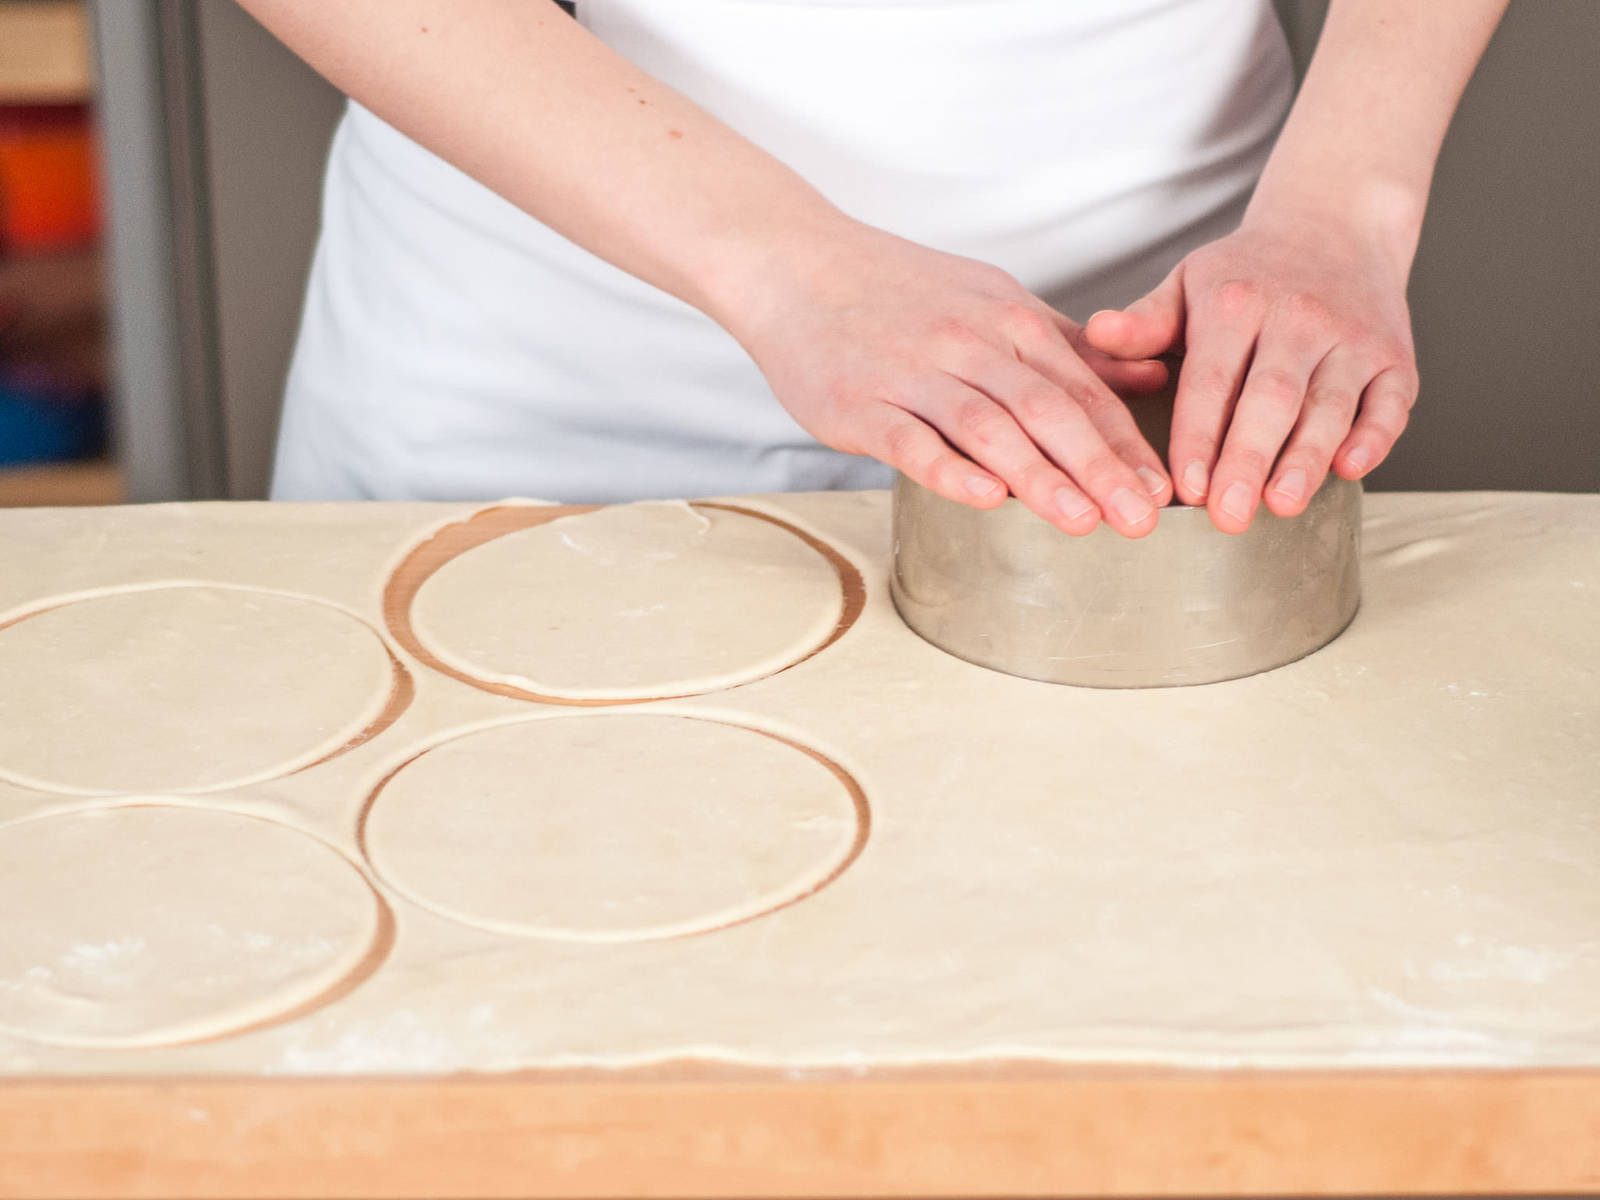 Preheat oven to 180°C/350°F. Lightly flour work surface. Roll dough into a thin layer with a rolling pin. Using a dough cutter, cut out rounds.